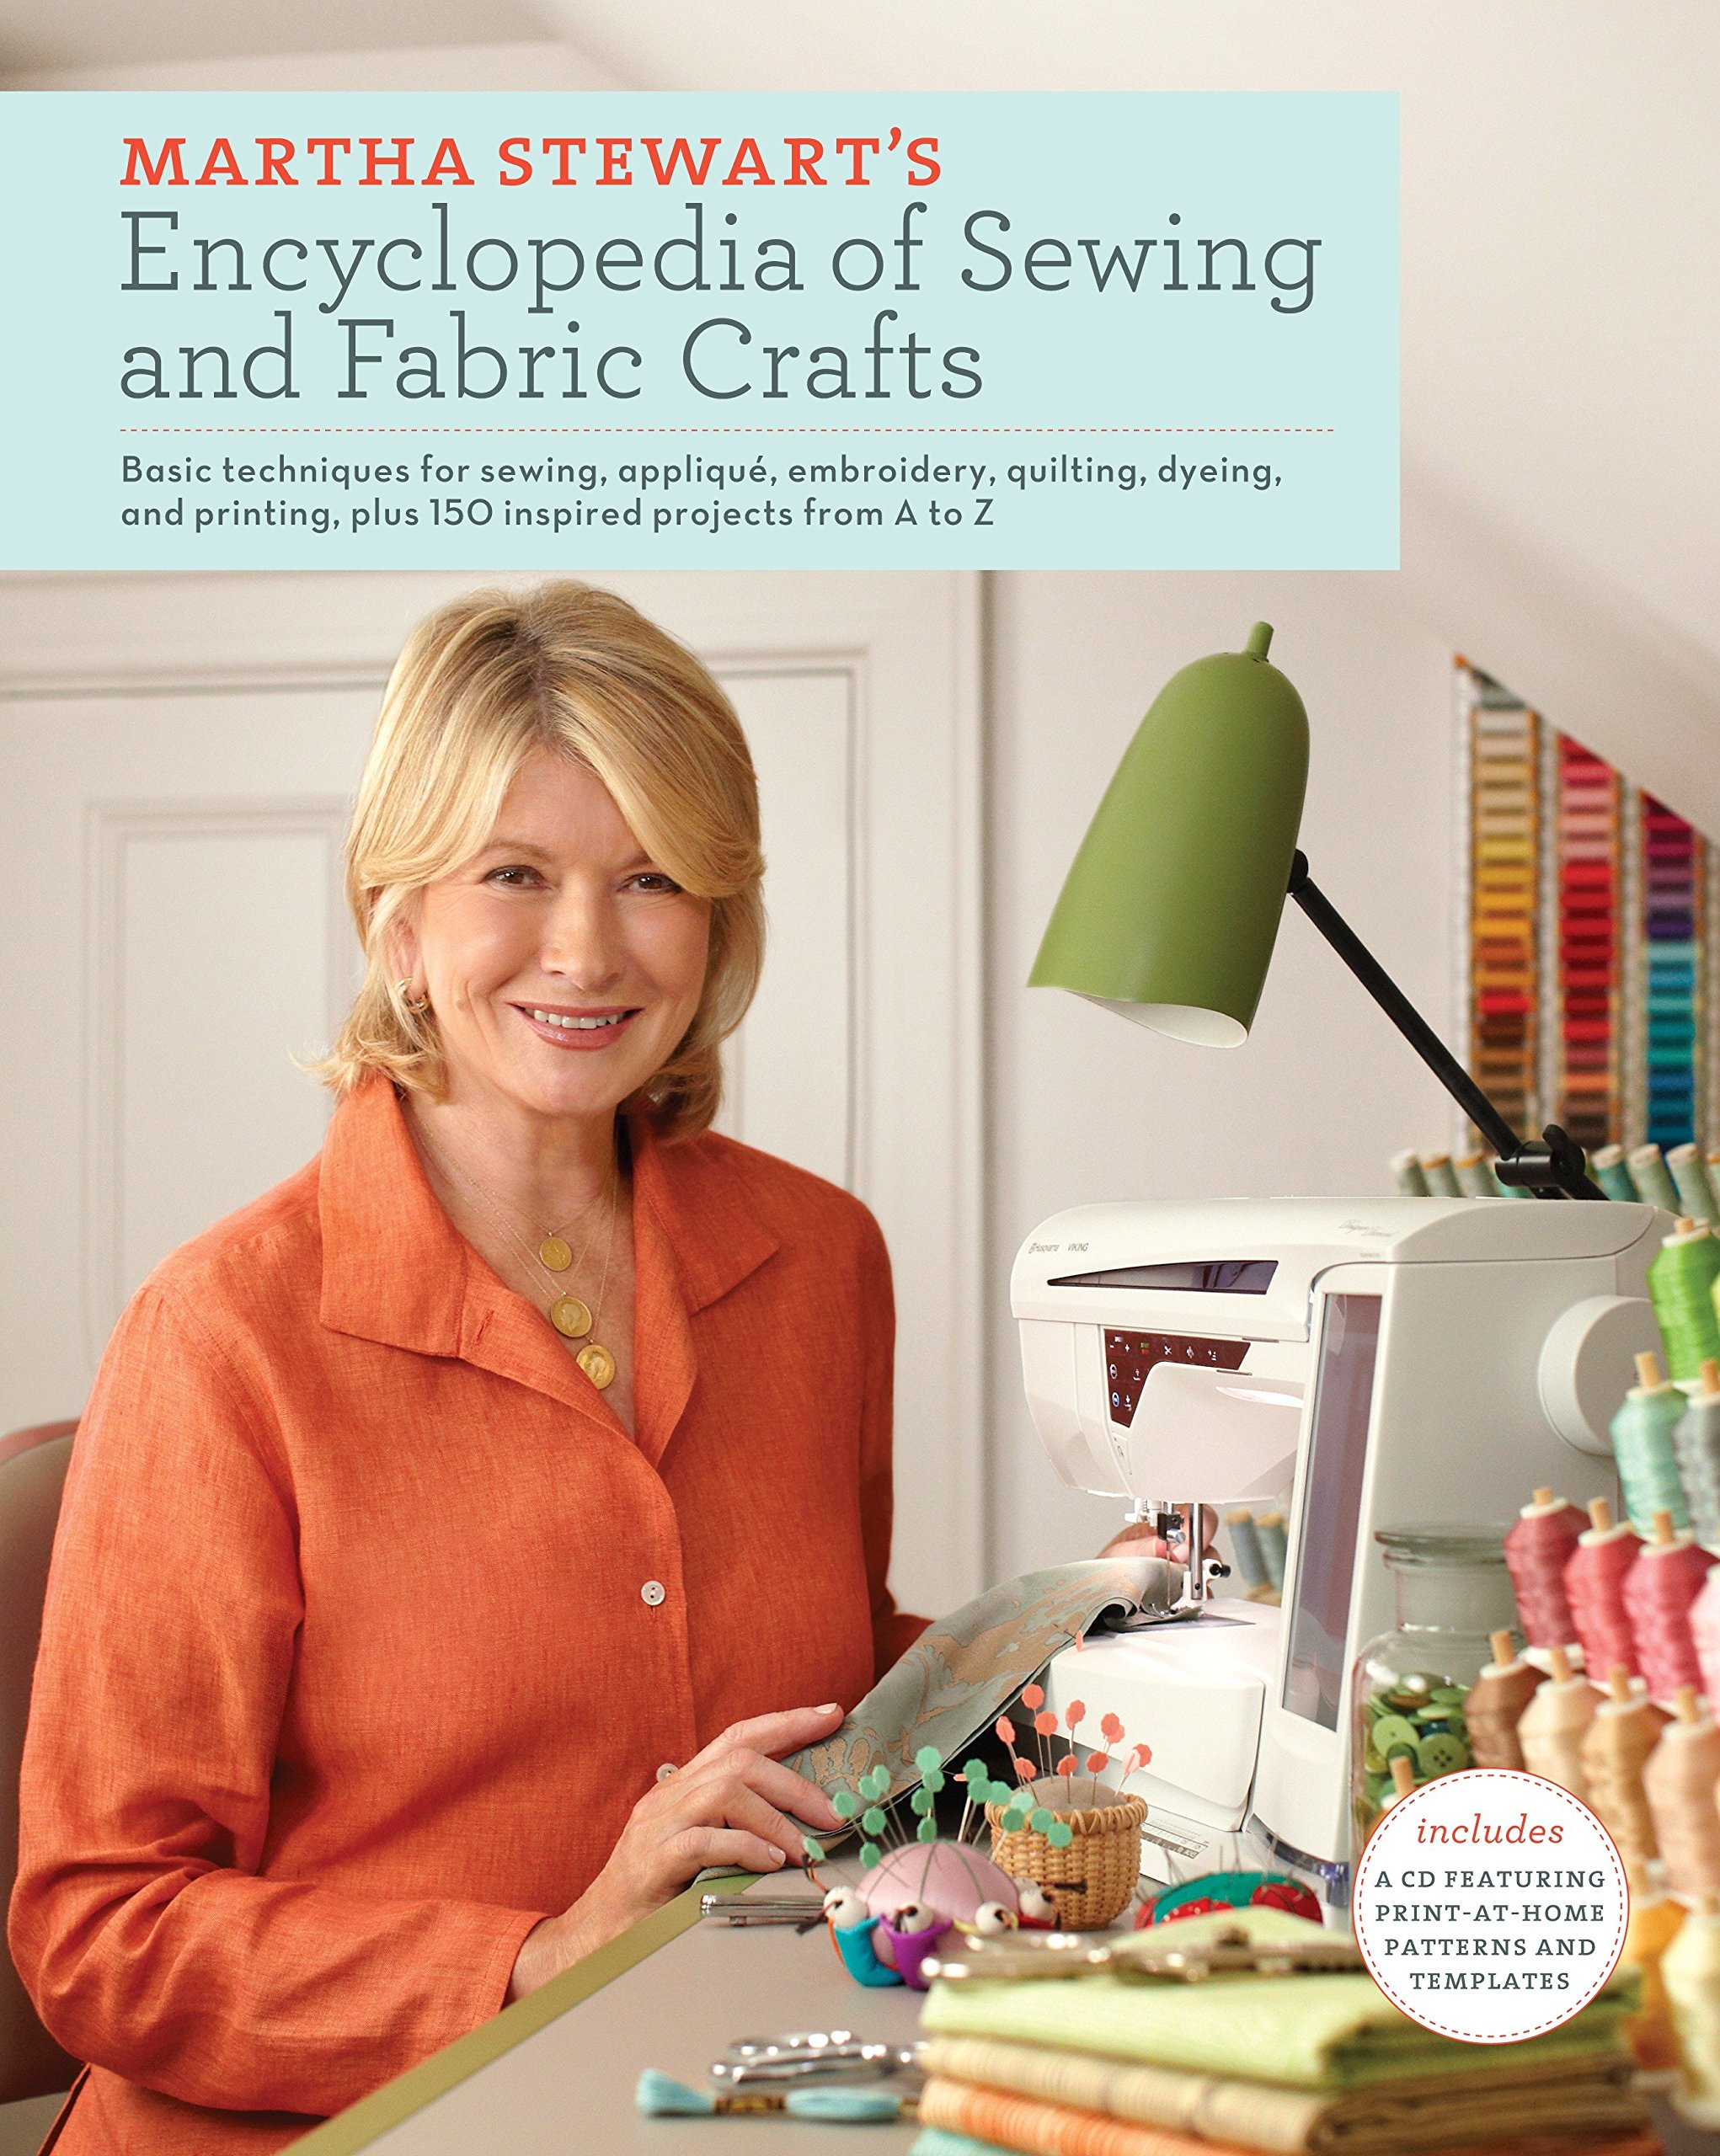 Download Martha Stewart's Encyclopedia of Sewing and Fabric Crafts: Basic Techniques for Sewing, Applique, Embroidery, Quilting, Dyeing, and Printing, plus 150 Inspired Projects from A to Z pdf